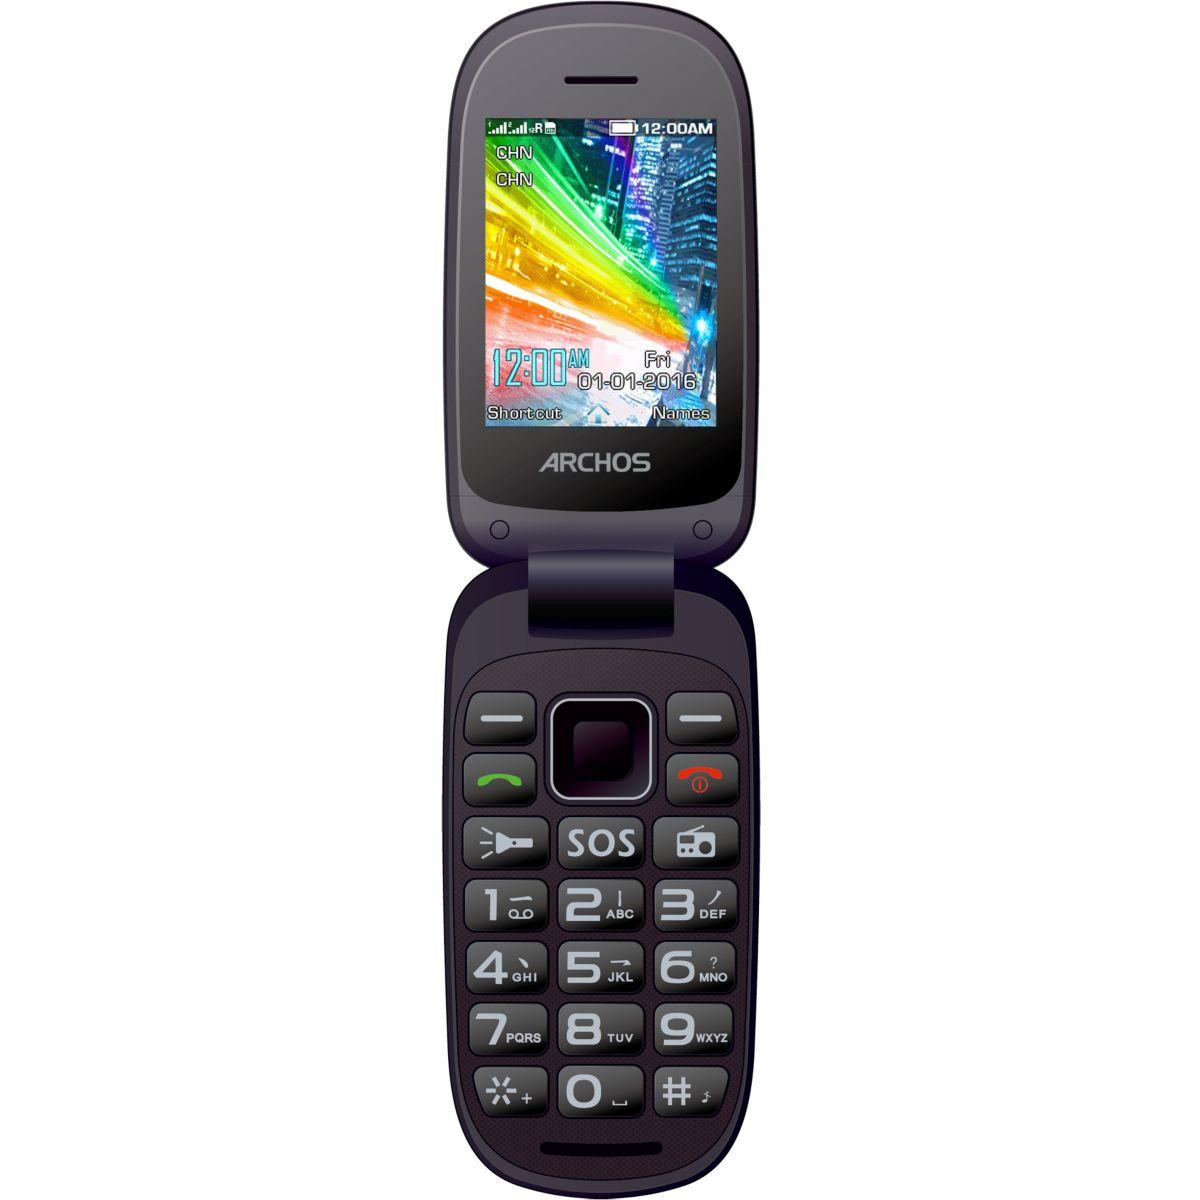 Mobile archos flip phone 2